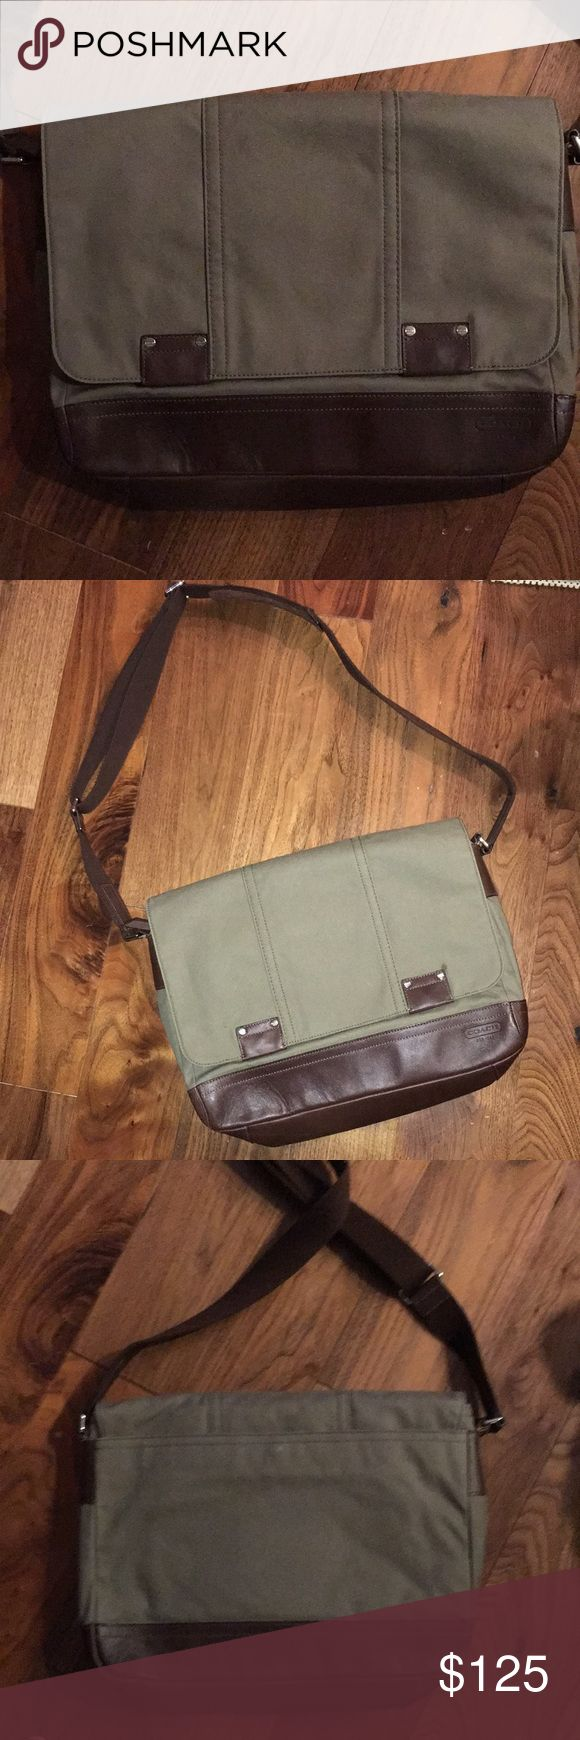 Men's Briefcase Coach Briefcase in forest green with chocolate leather accents and shoulder strap. Multiple pouches. Coach Bags Briefcases